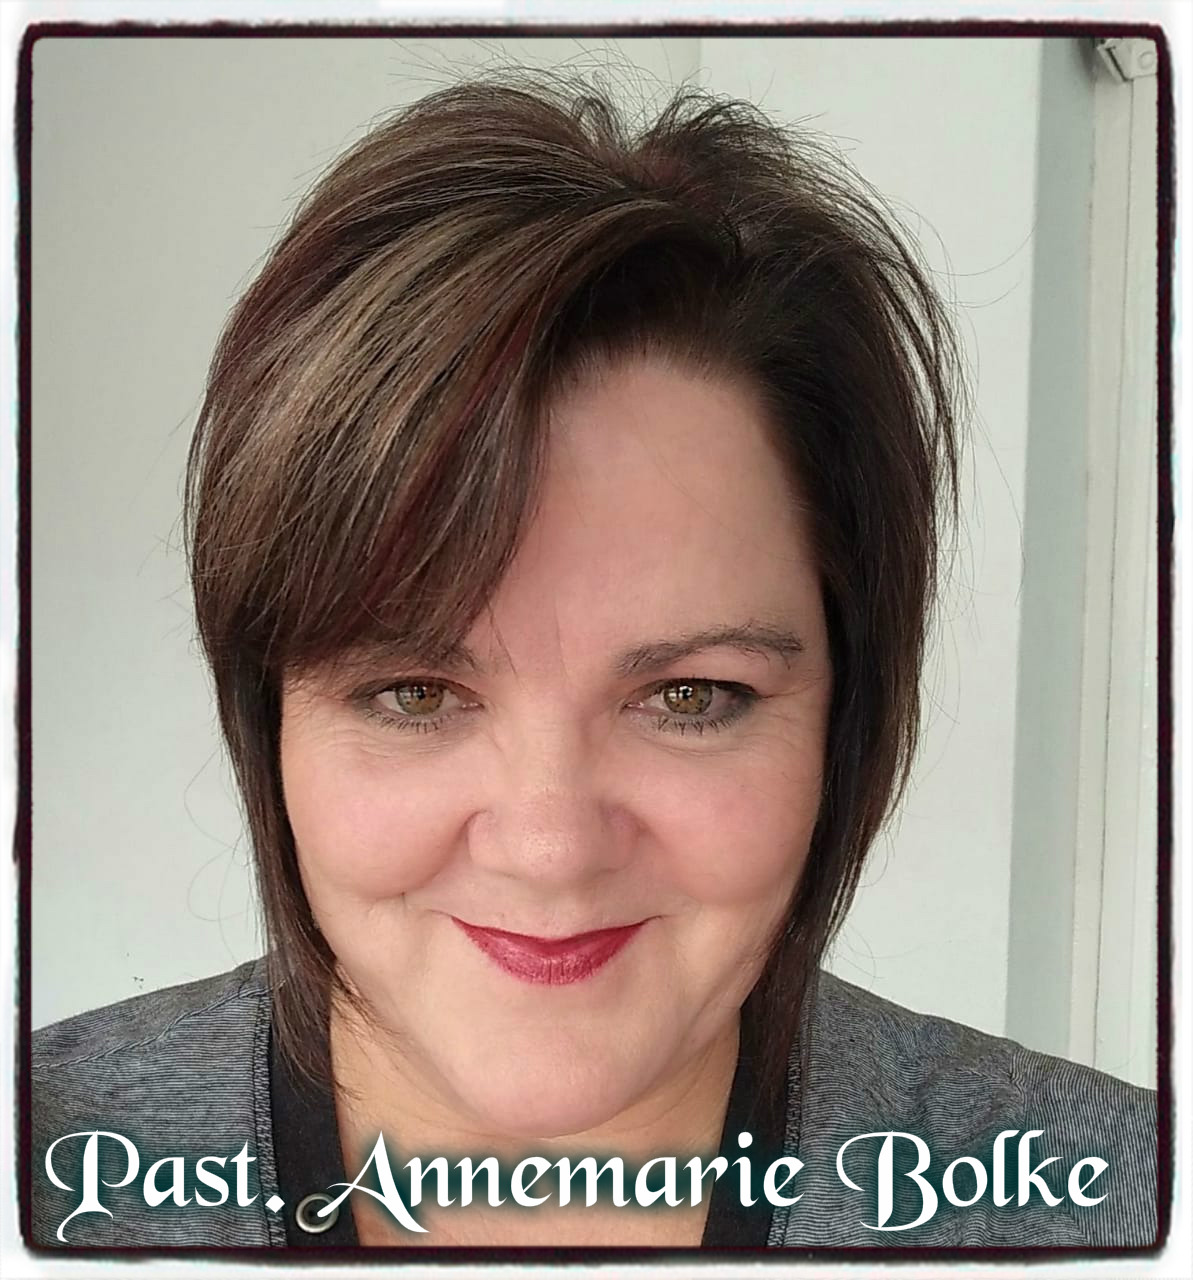 Past. Annemarie Bolke